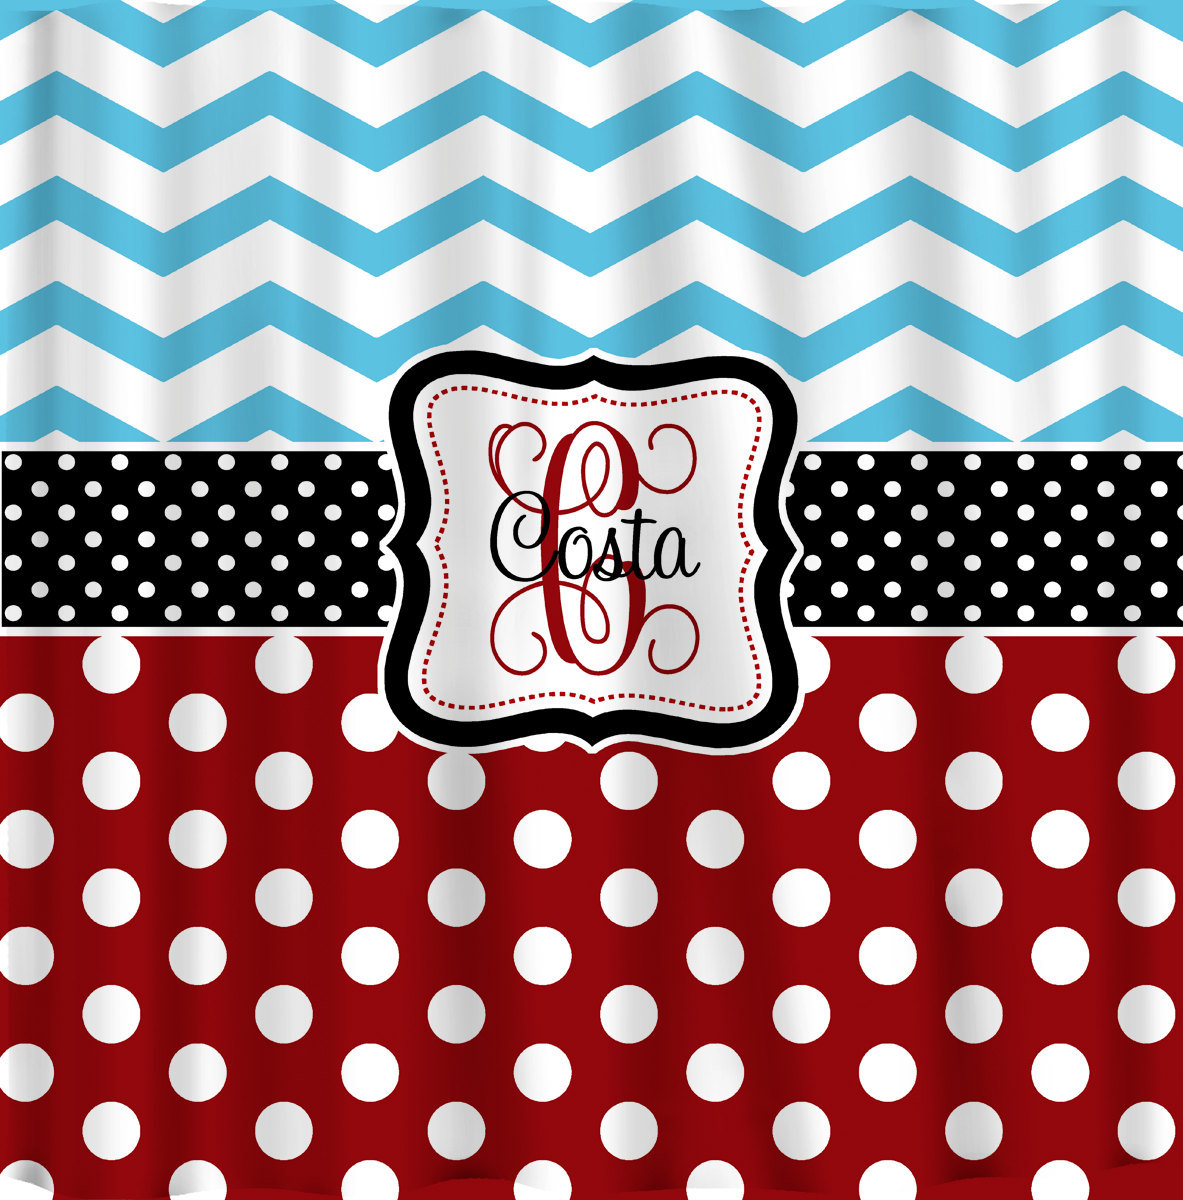 Personalized Shower Curtain -Blue Chevron-Red Polka Dots, Blk and white accents